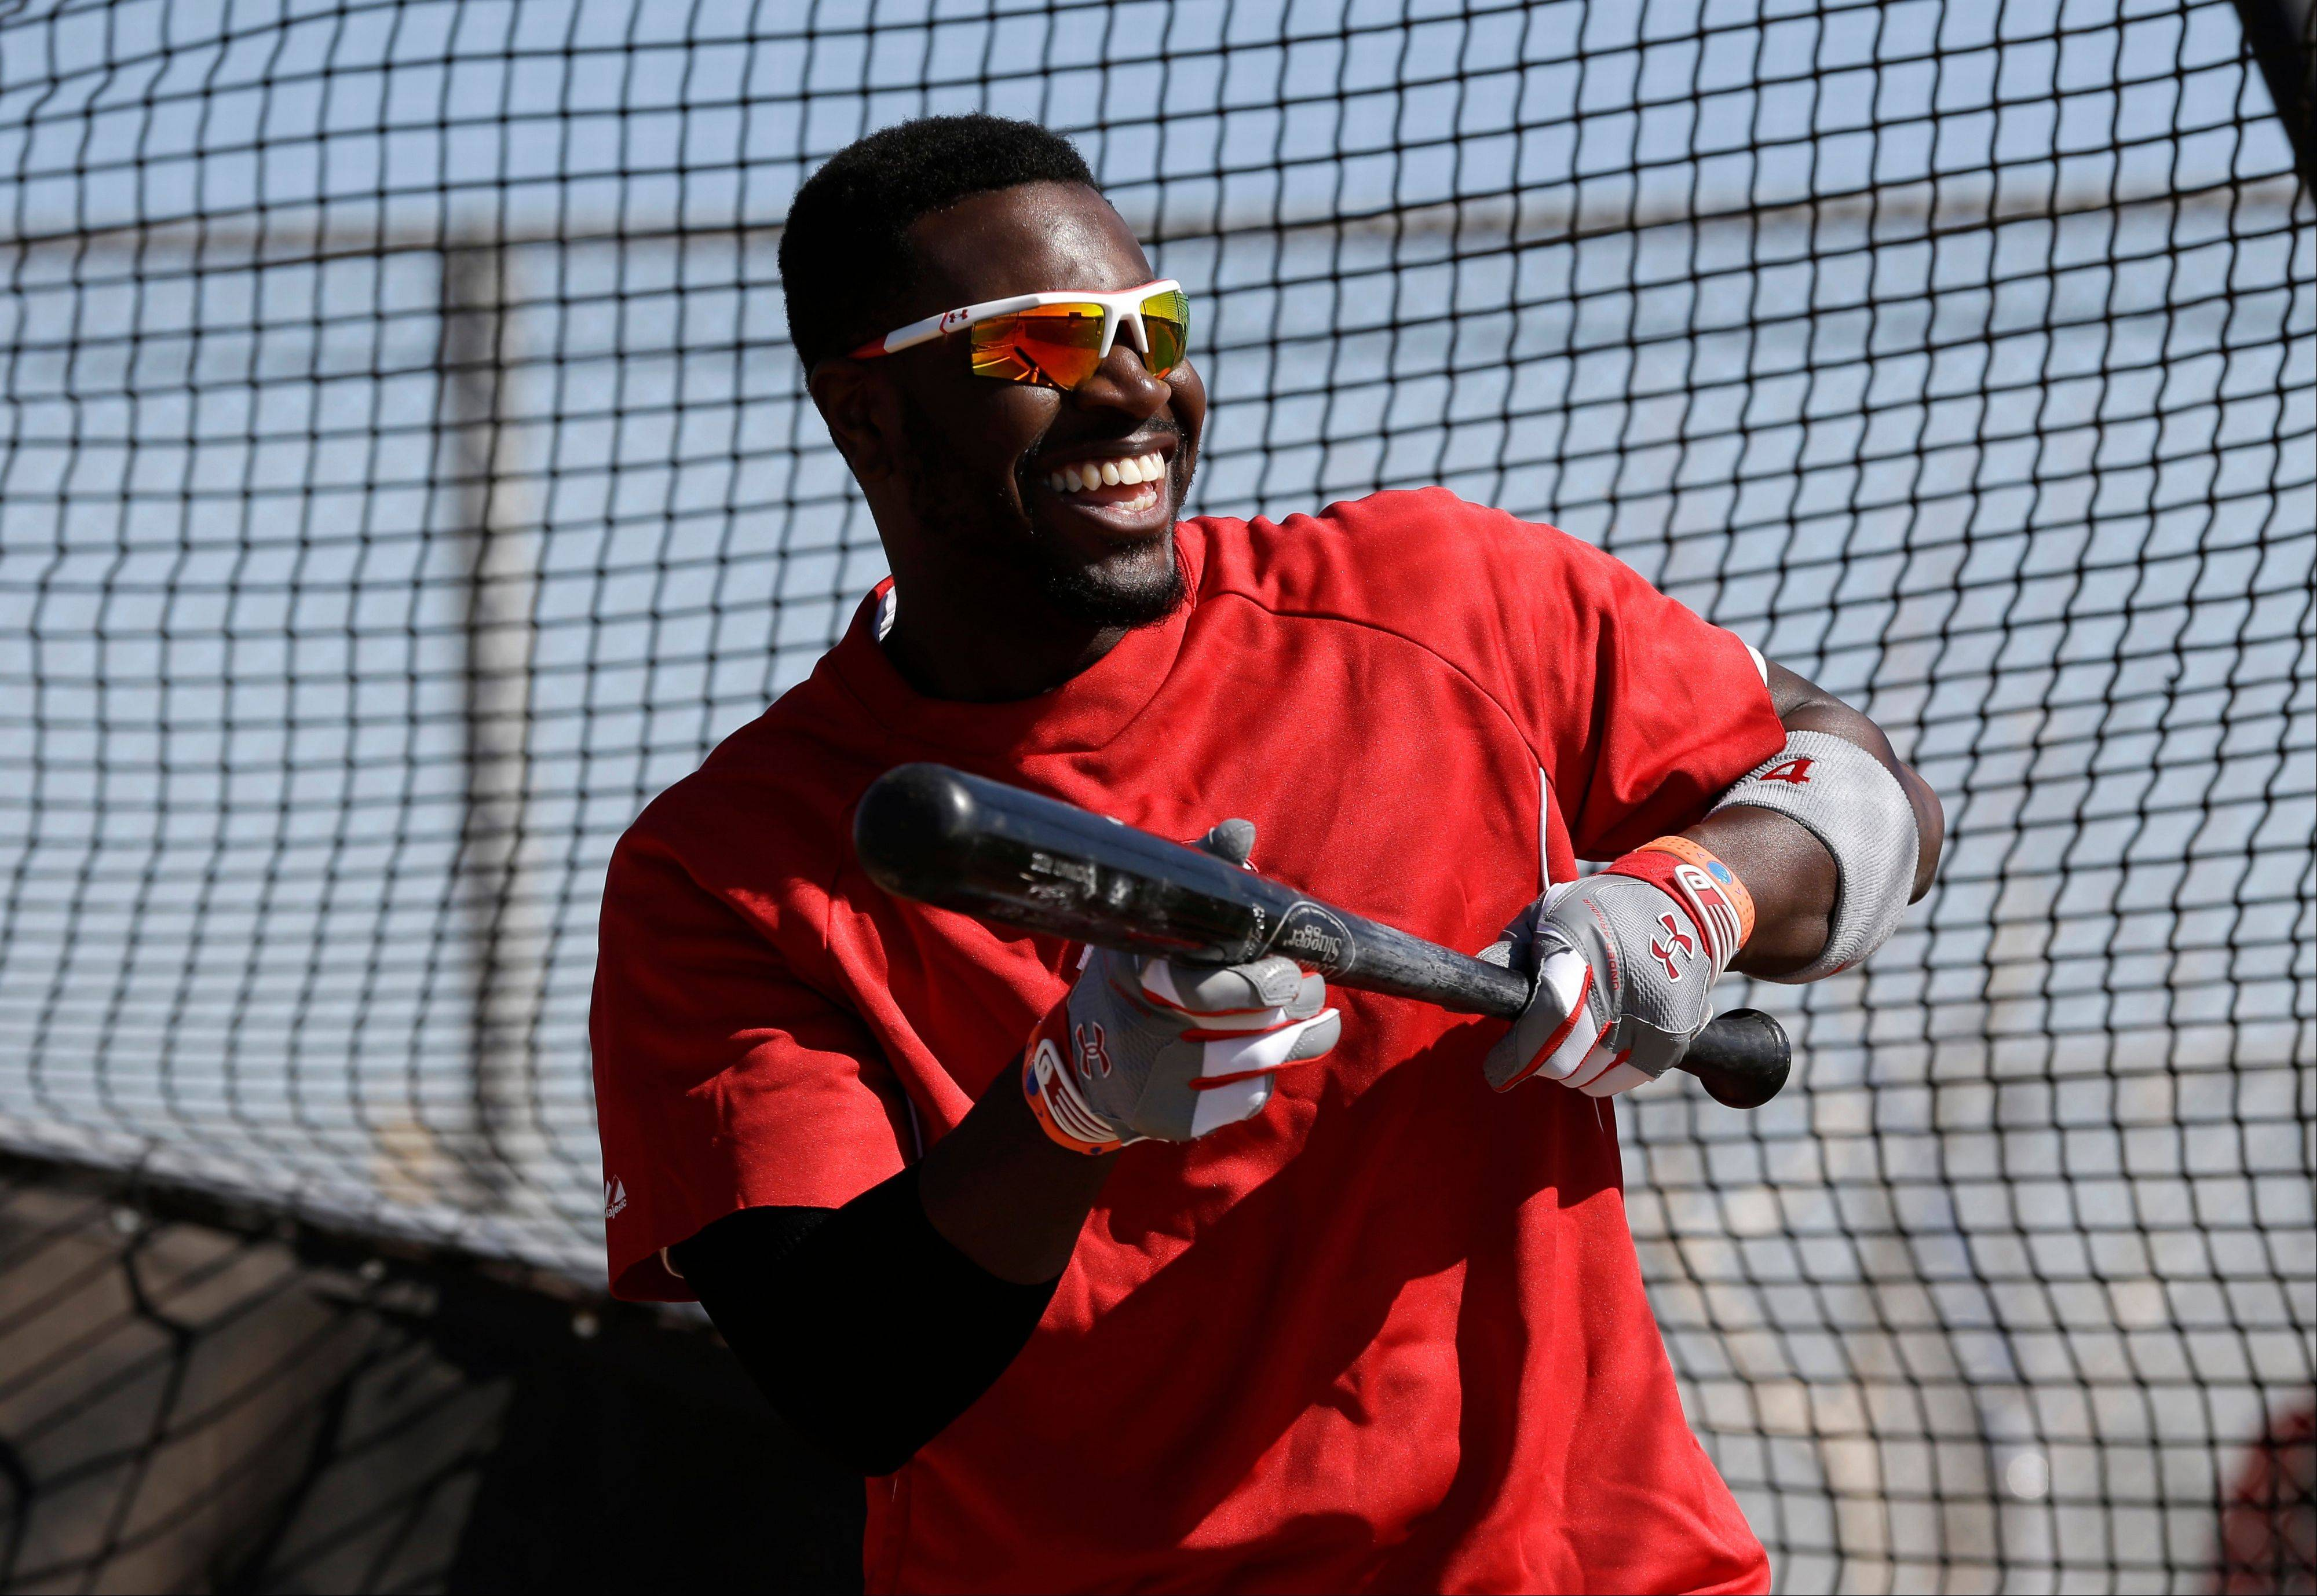 Reds second baseman Brandon Phillips says he likes to play with flair because the game is boring without it.